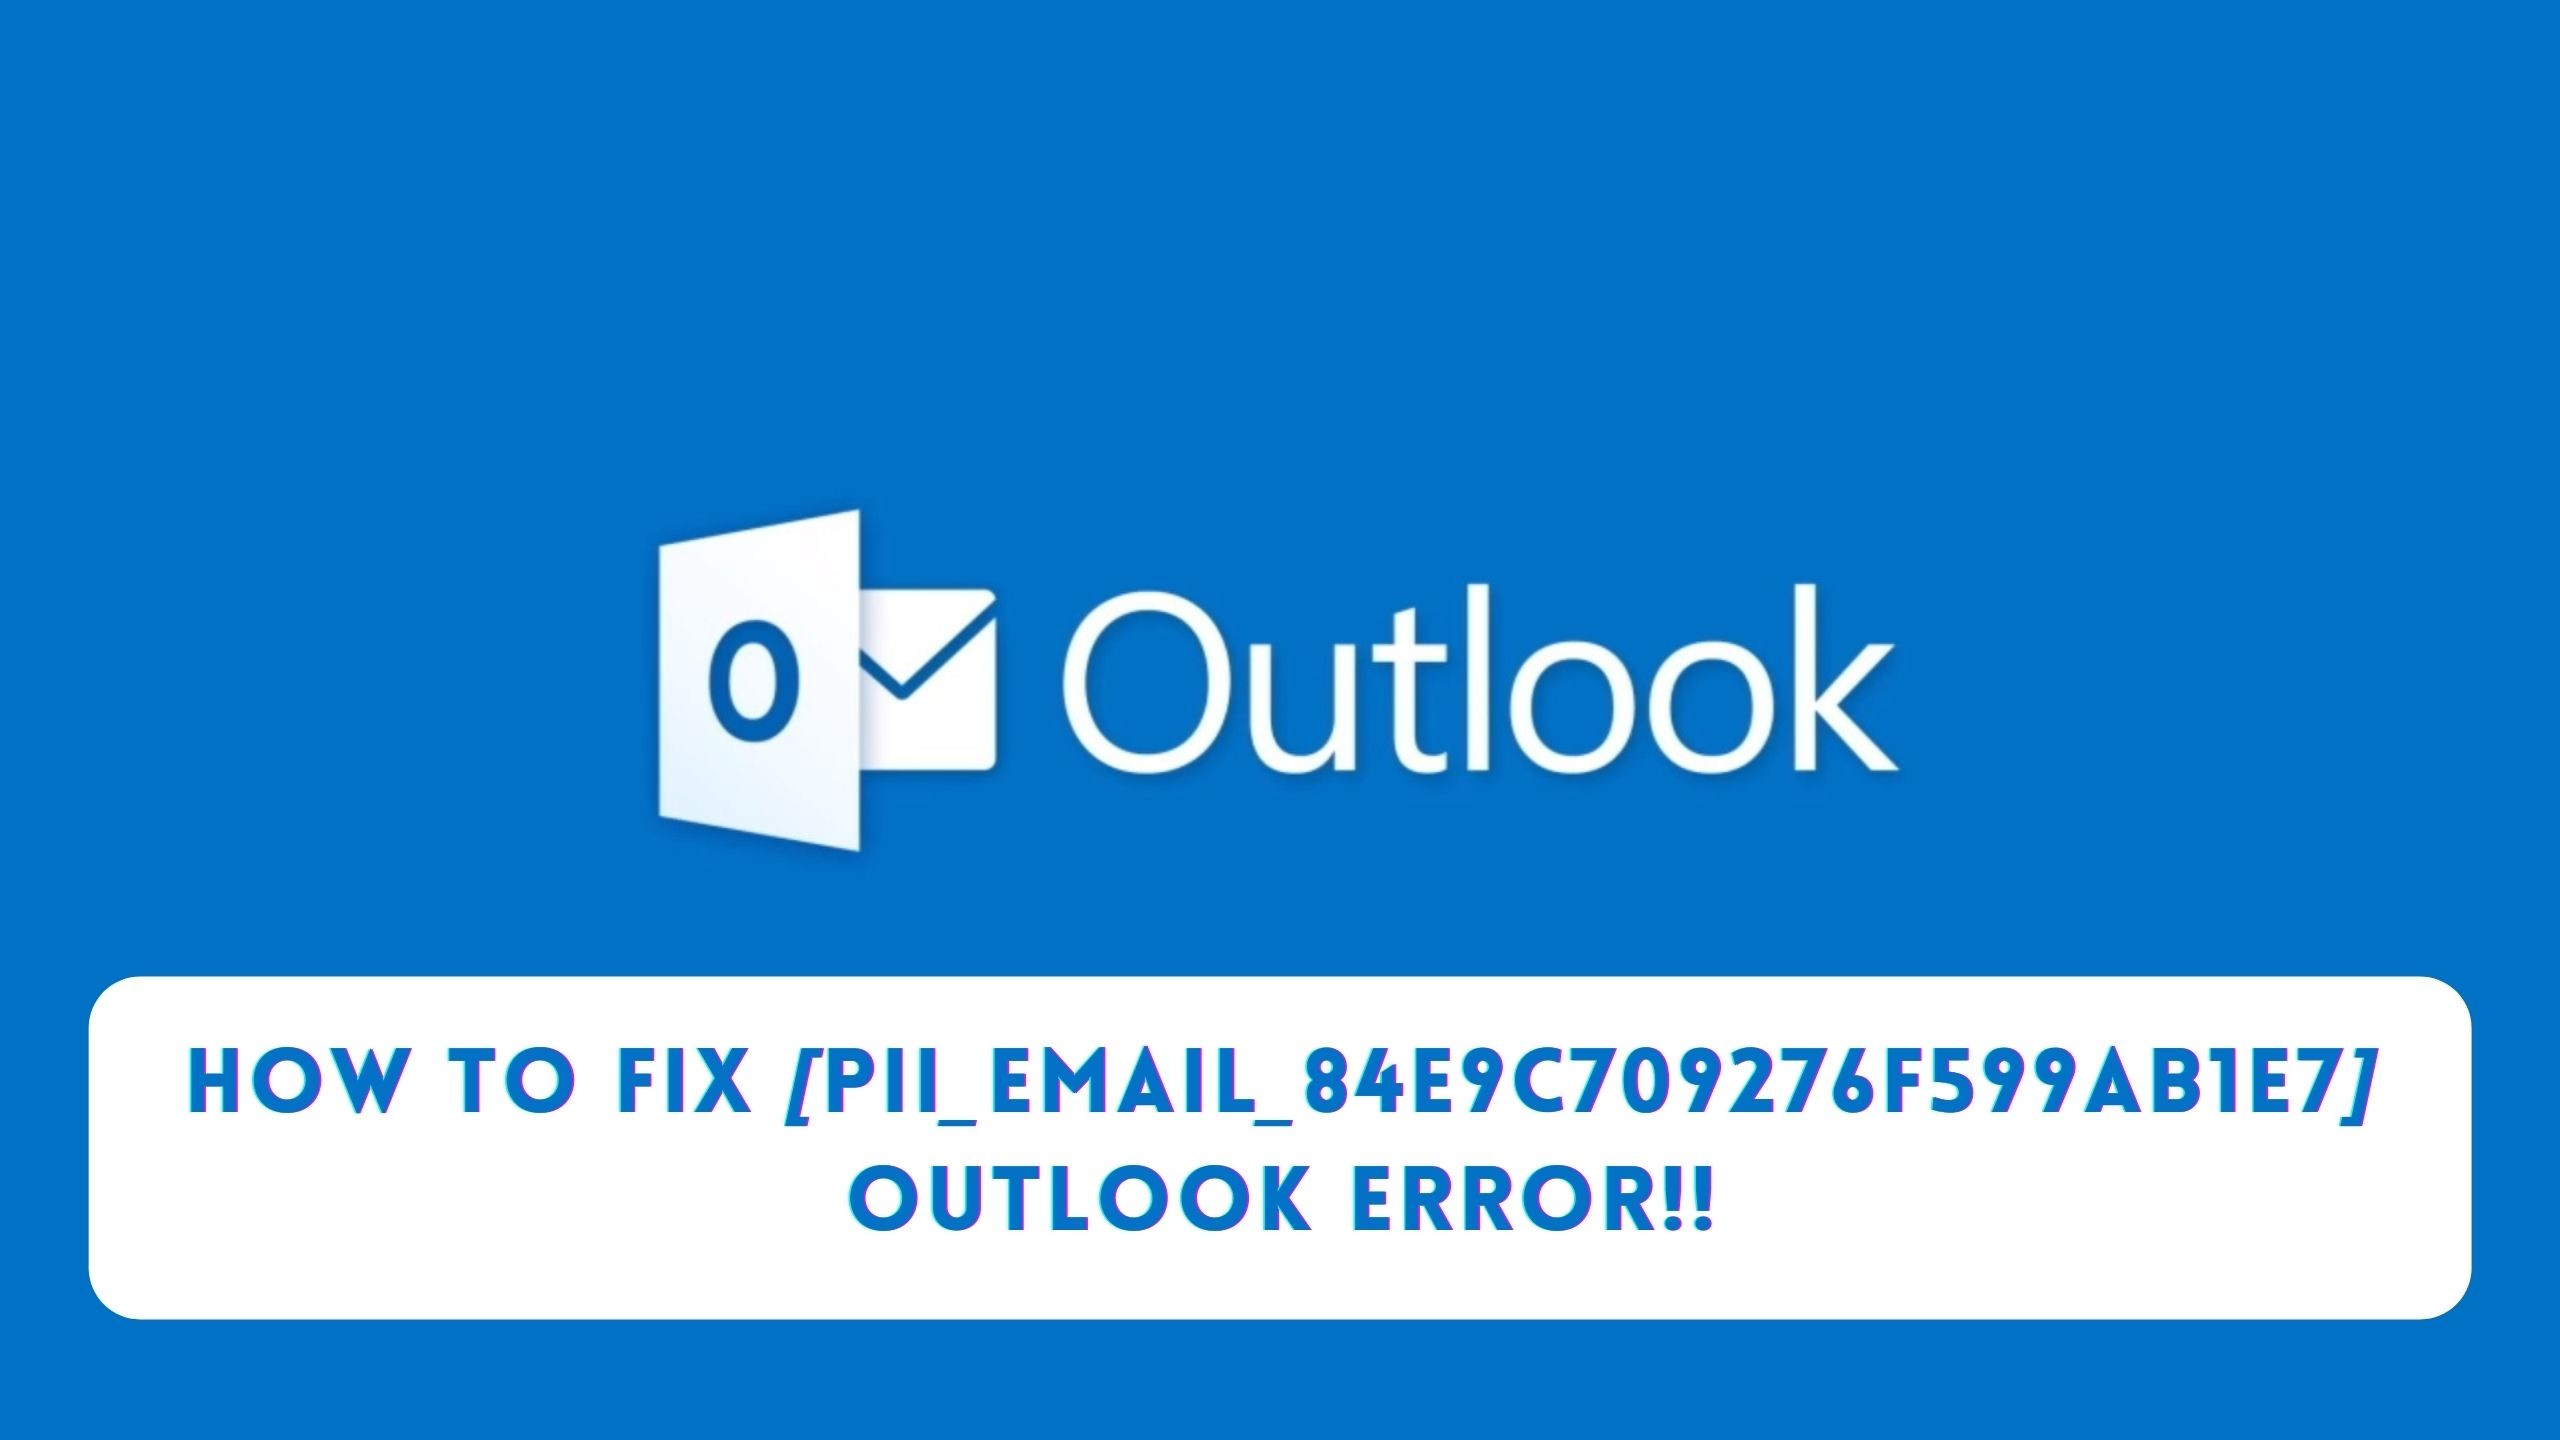 How to Fix [pii_email_84e9c709276f599ab1e7] Outlook Error!!